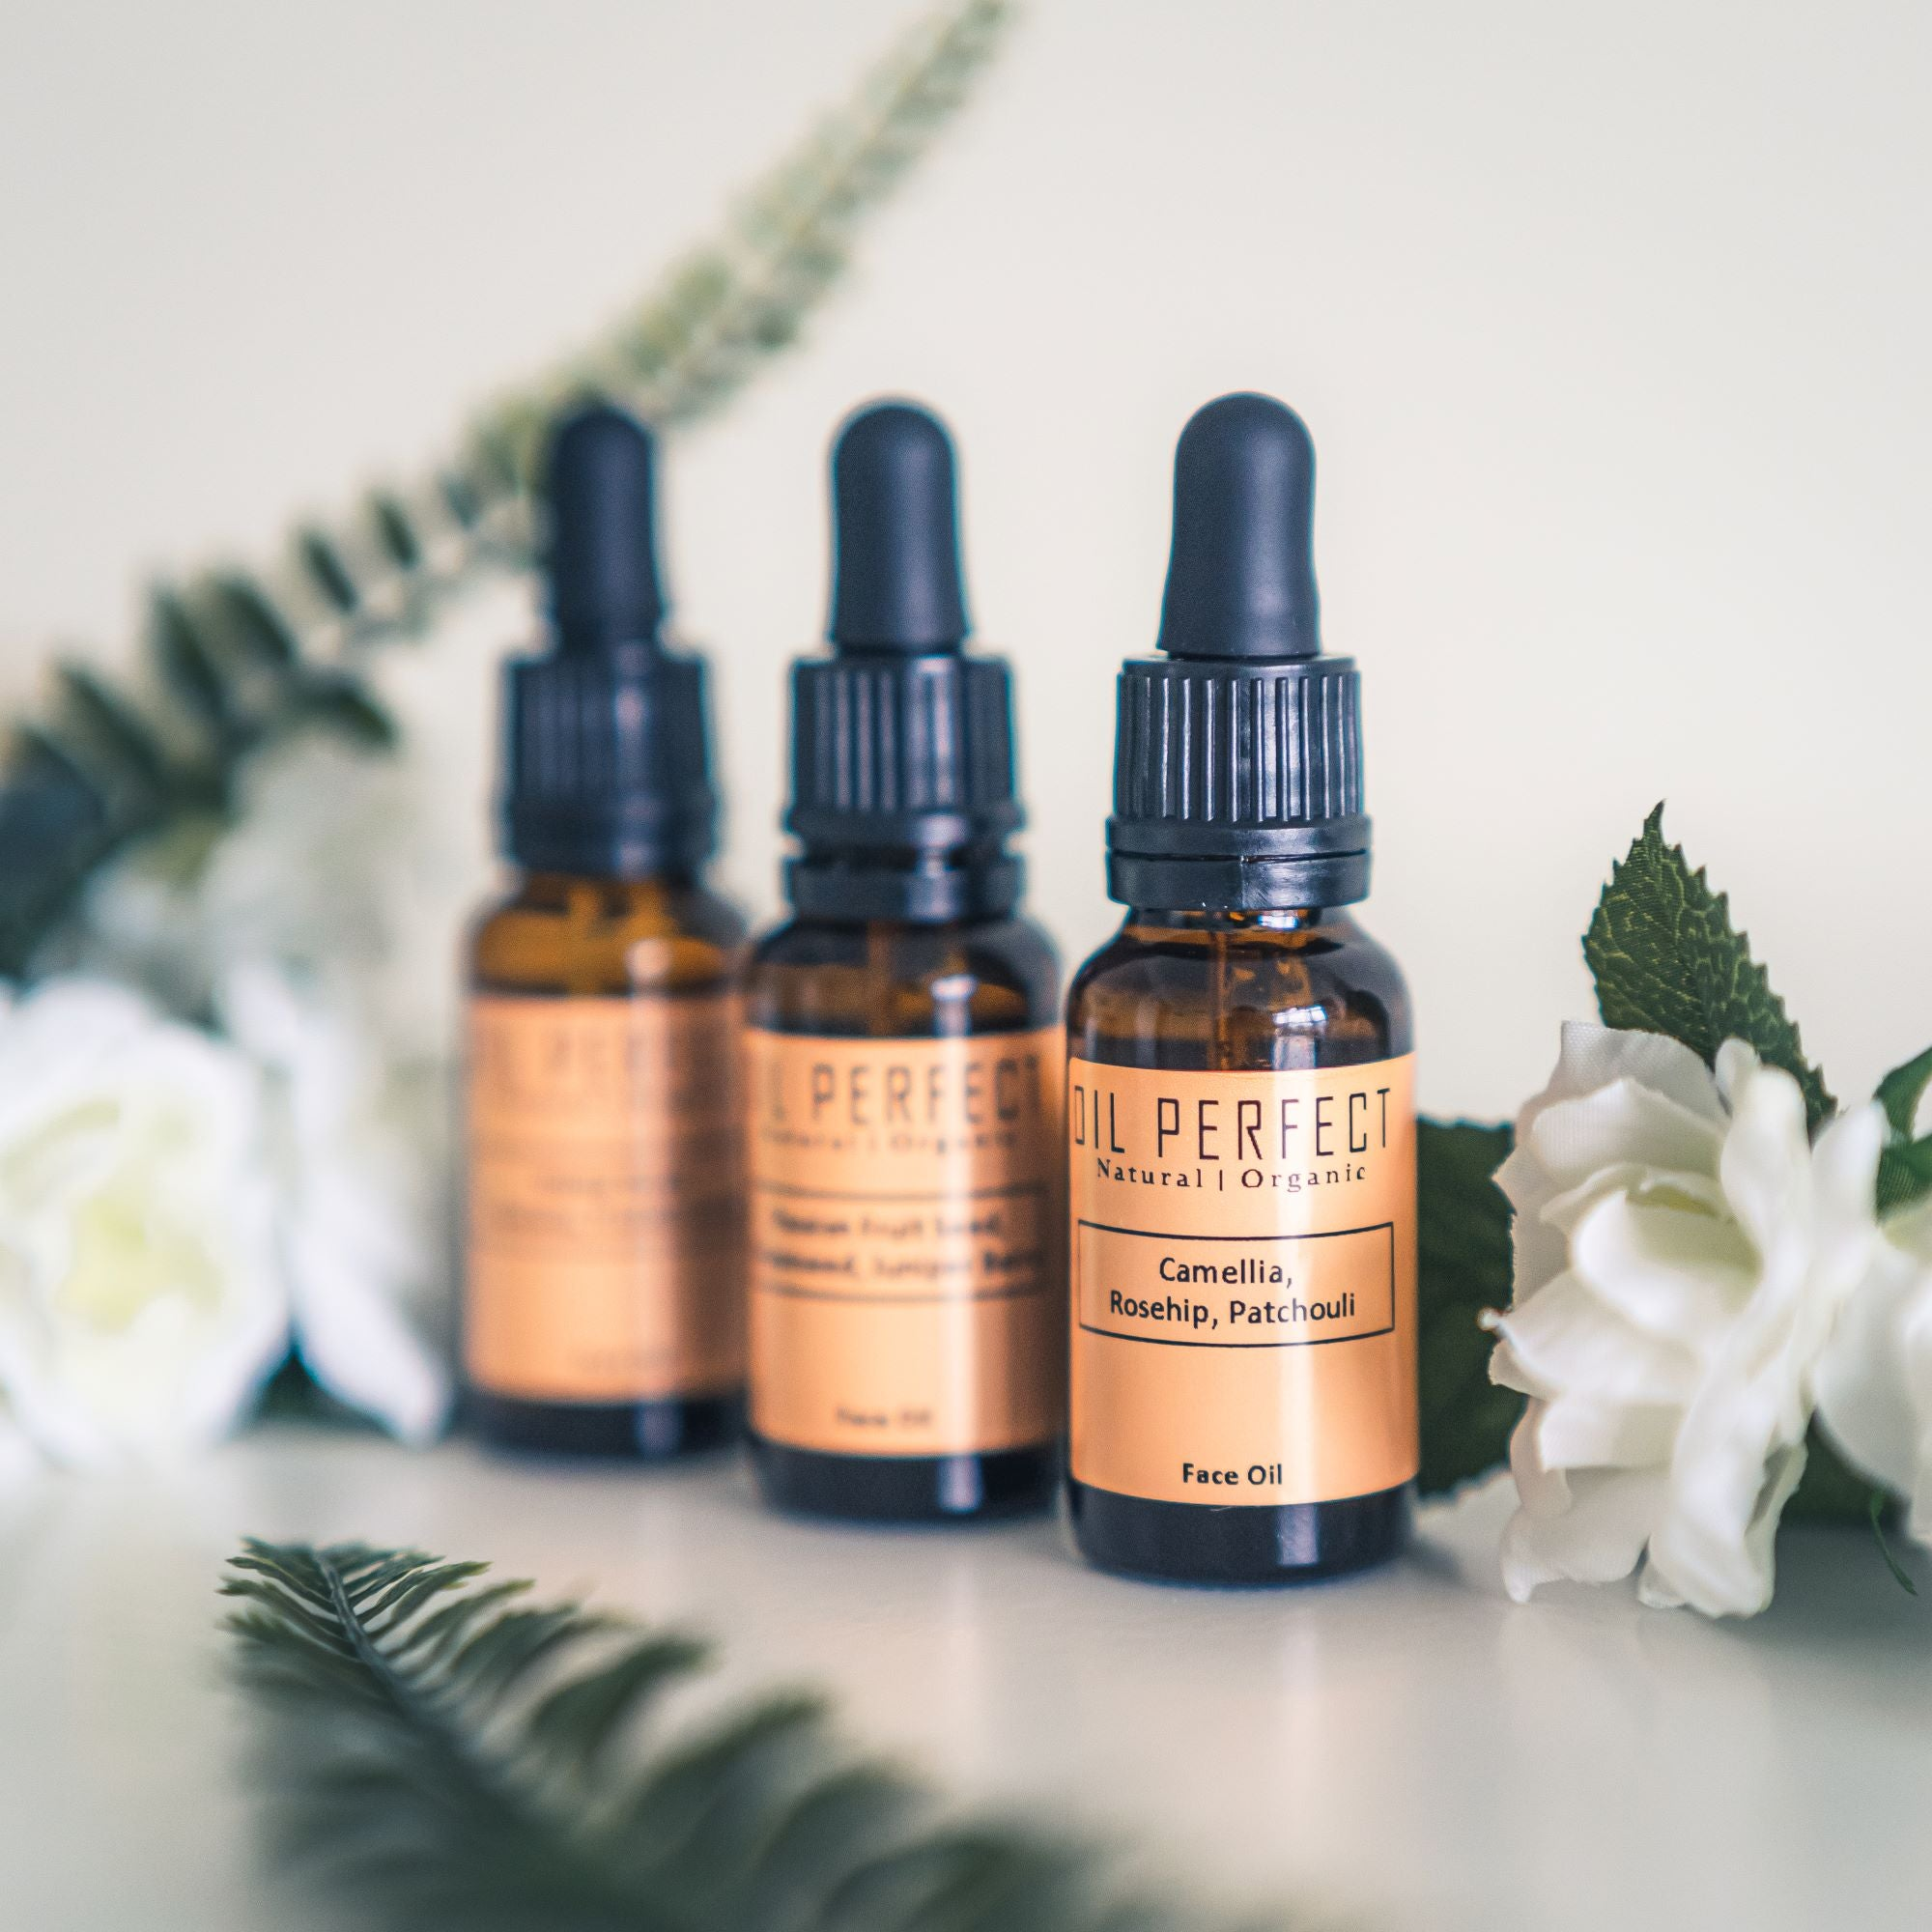 Our customised organic face oil is designed to tailor your skincare regimen to the changing needs of your skin in 3 simple steps. By Oil Perfect.